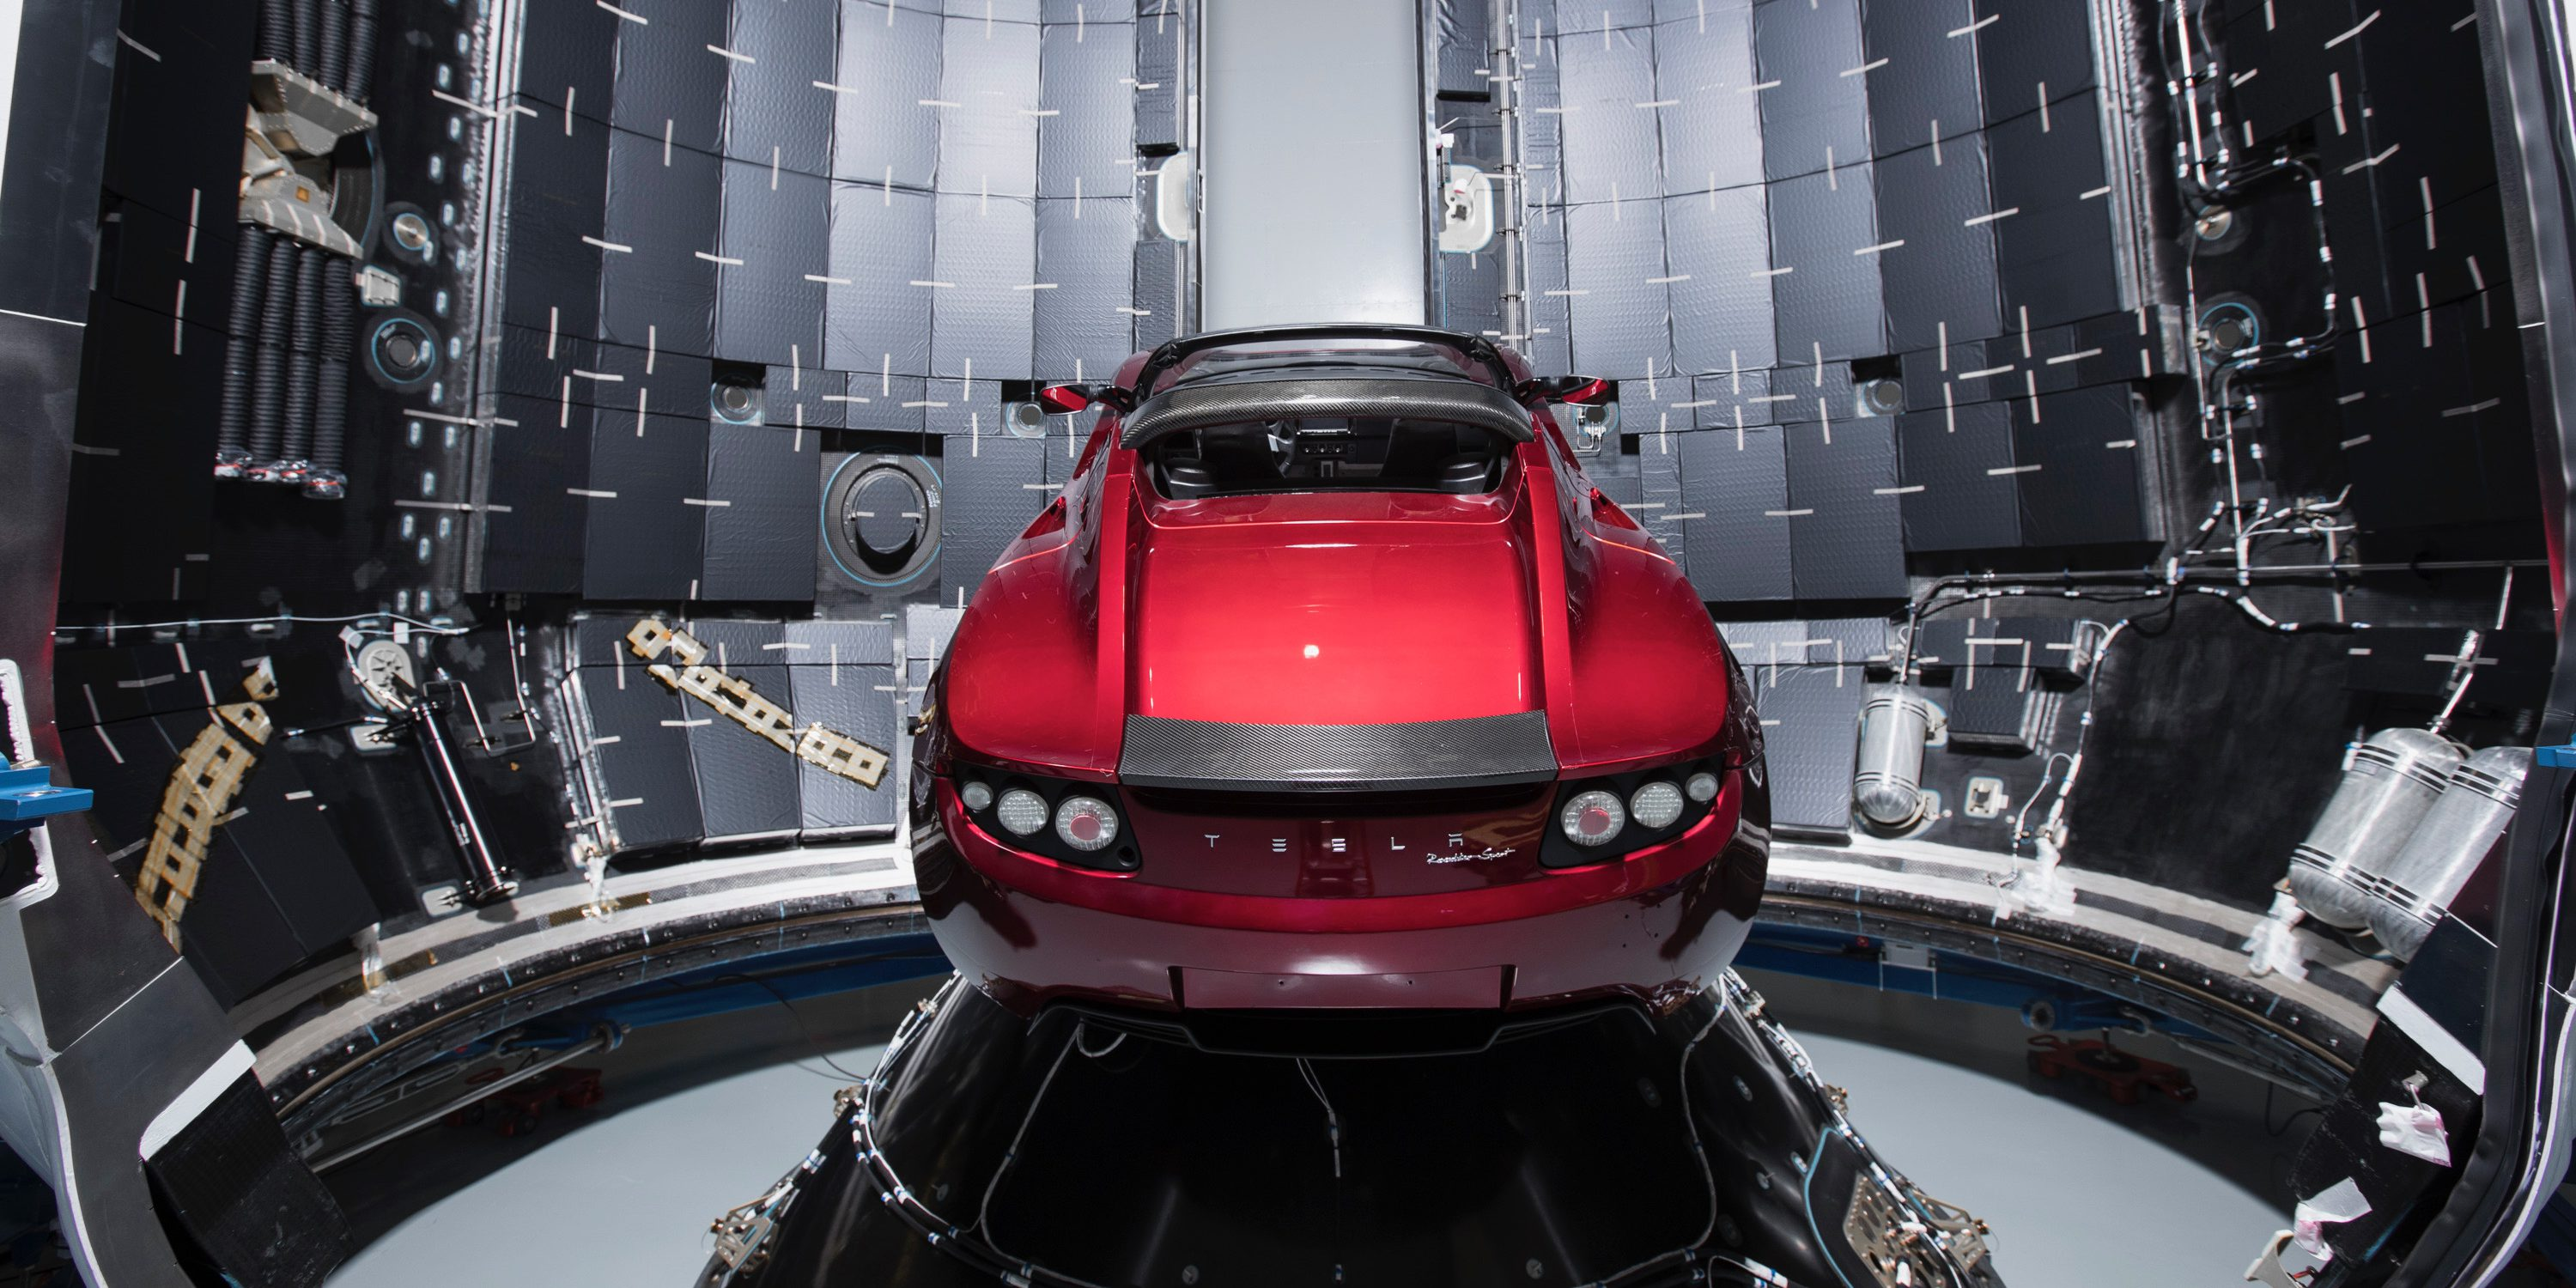 Tesla Roadster set to launch into space on SpaceX Falcon Heavy on February 6